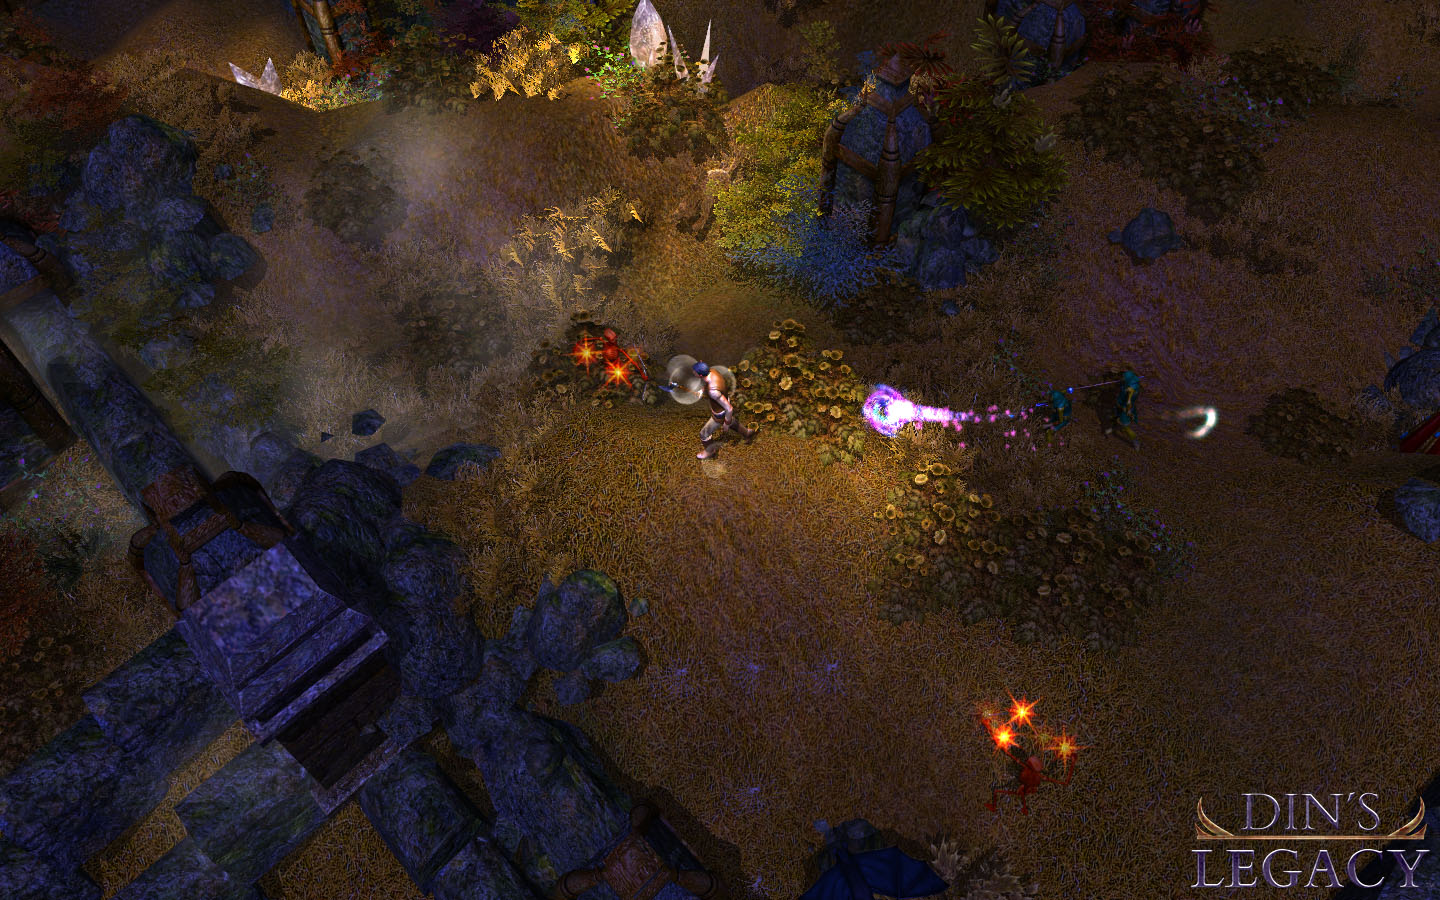 Fantasy RPG Din's Legacy enters Early Access